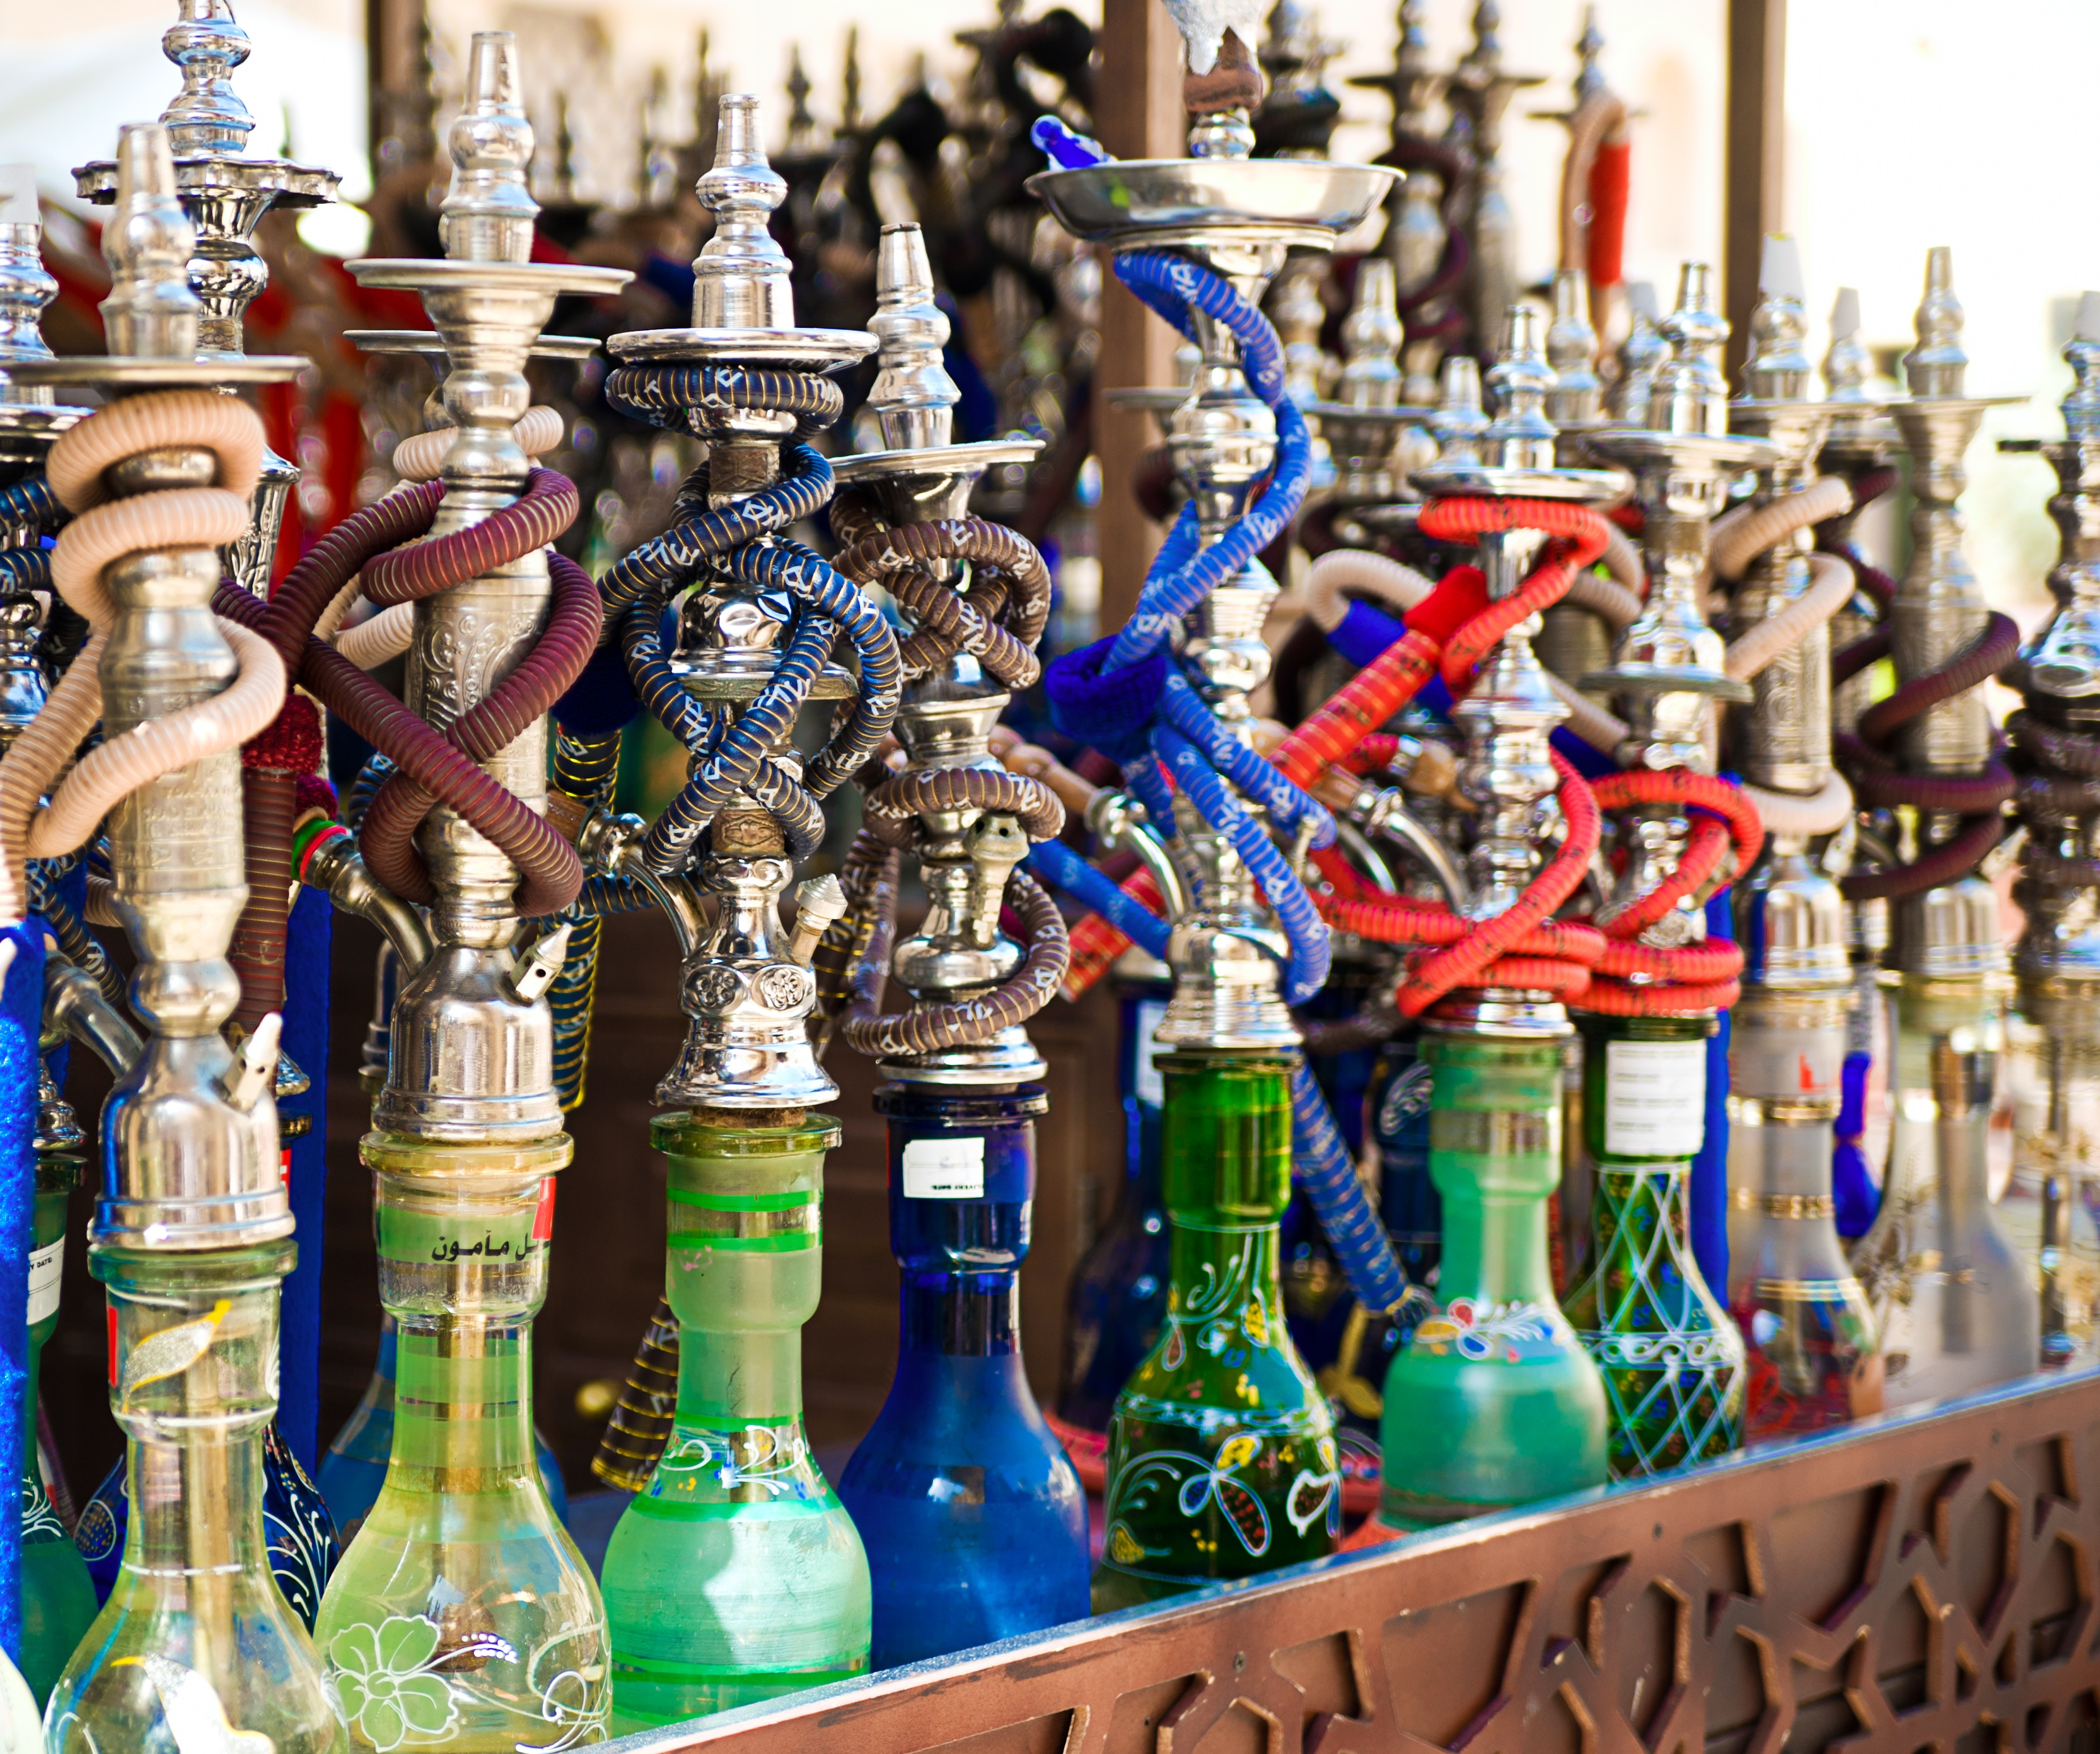 """trends in hookah Of tobacco in the middle east and asia after the advent of tobacco in the region, a special prod- american lung association tobacco policy trend alert 1 head bowl water body hose mouthpiece coal tobacco """"according to one study, more than 90% of beginning hookah smokers think cigarette smoking is."""